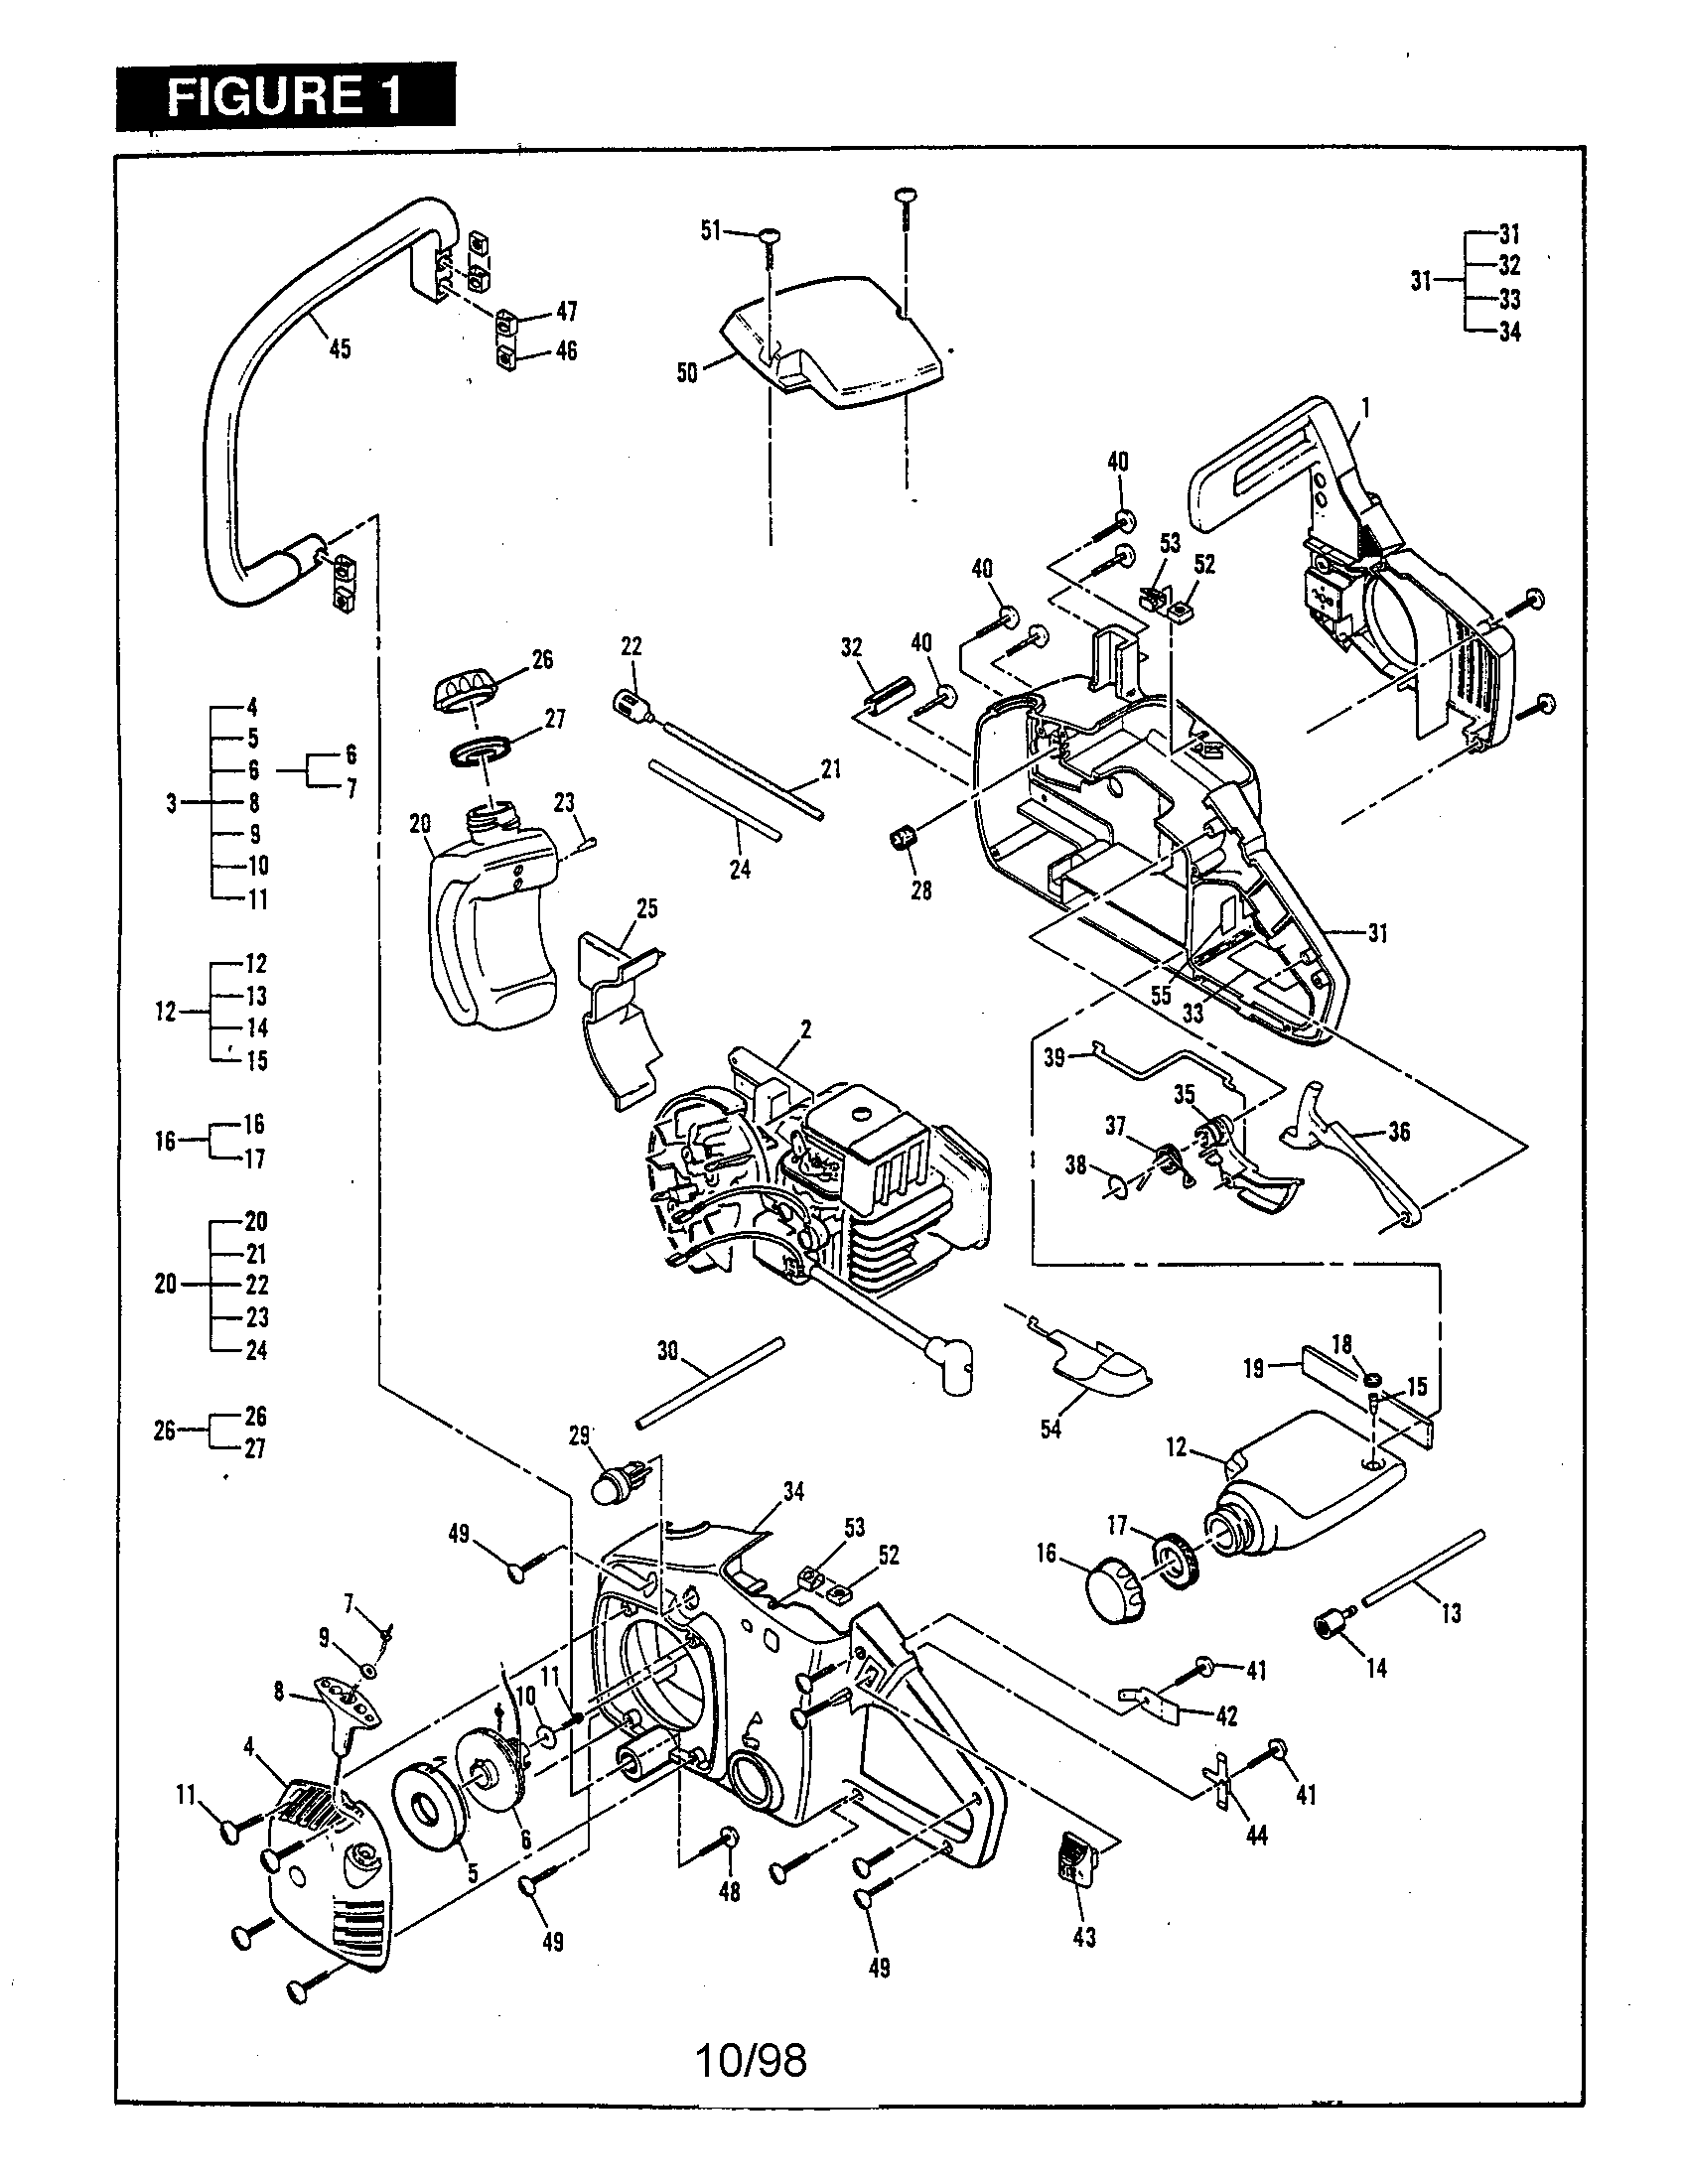 [MNL-1641] Mcculloch Timber Bear Chainsaw Repair Manual